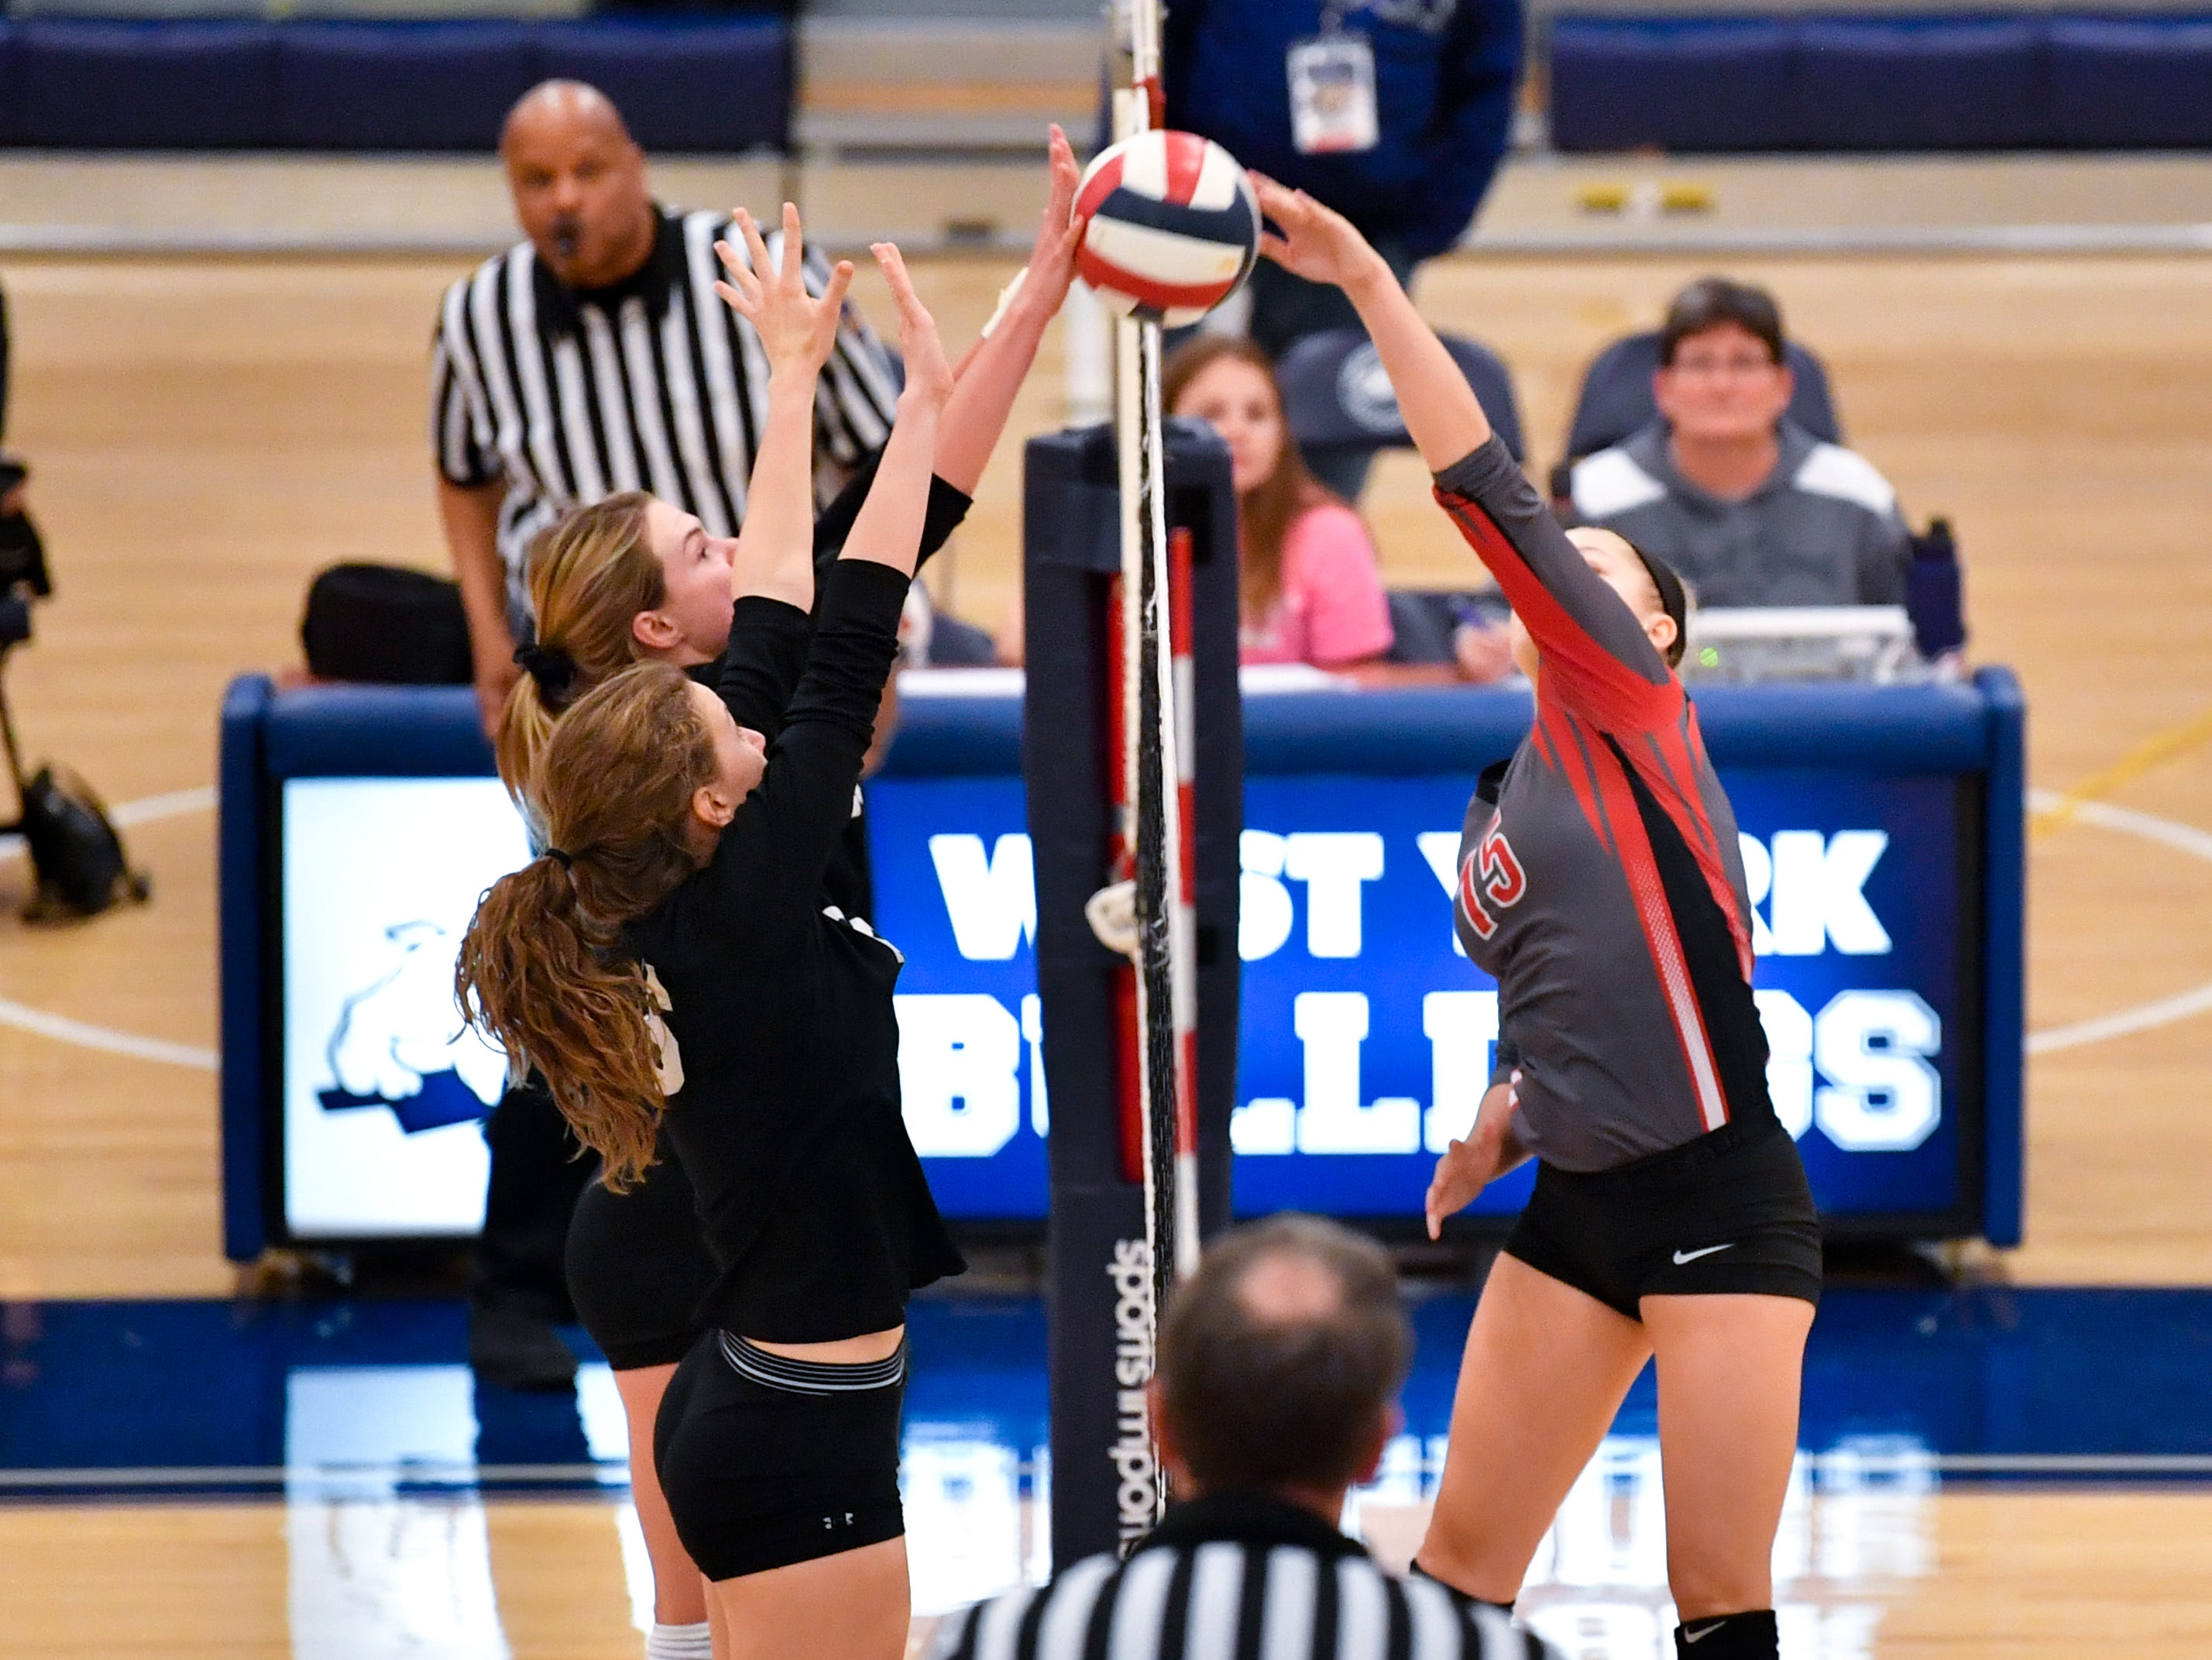 York Suburban blocks the ball during the District 3 Class 3A girls' volleyball quarterfinals between Dover and York Suburban at West York High School, October 30, 2018. The Eagles defeated the Trojans 3-2.